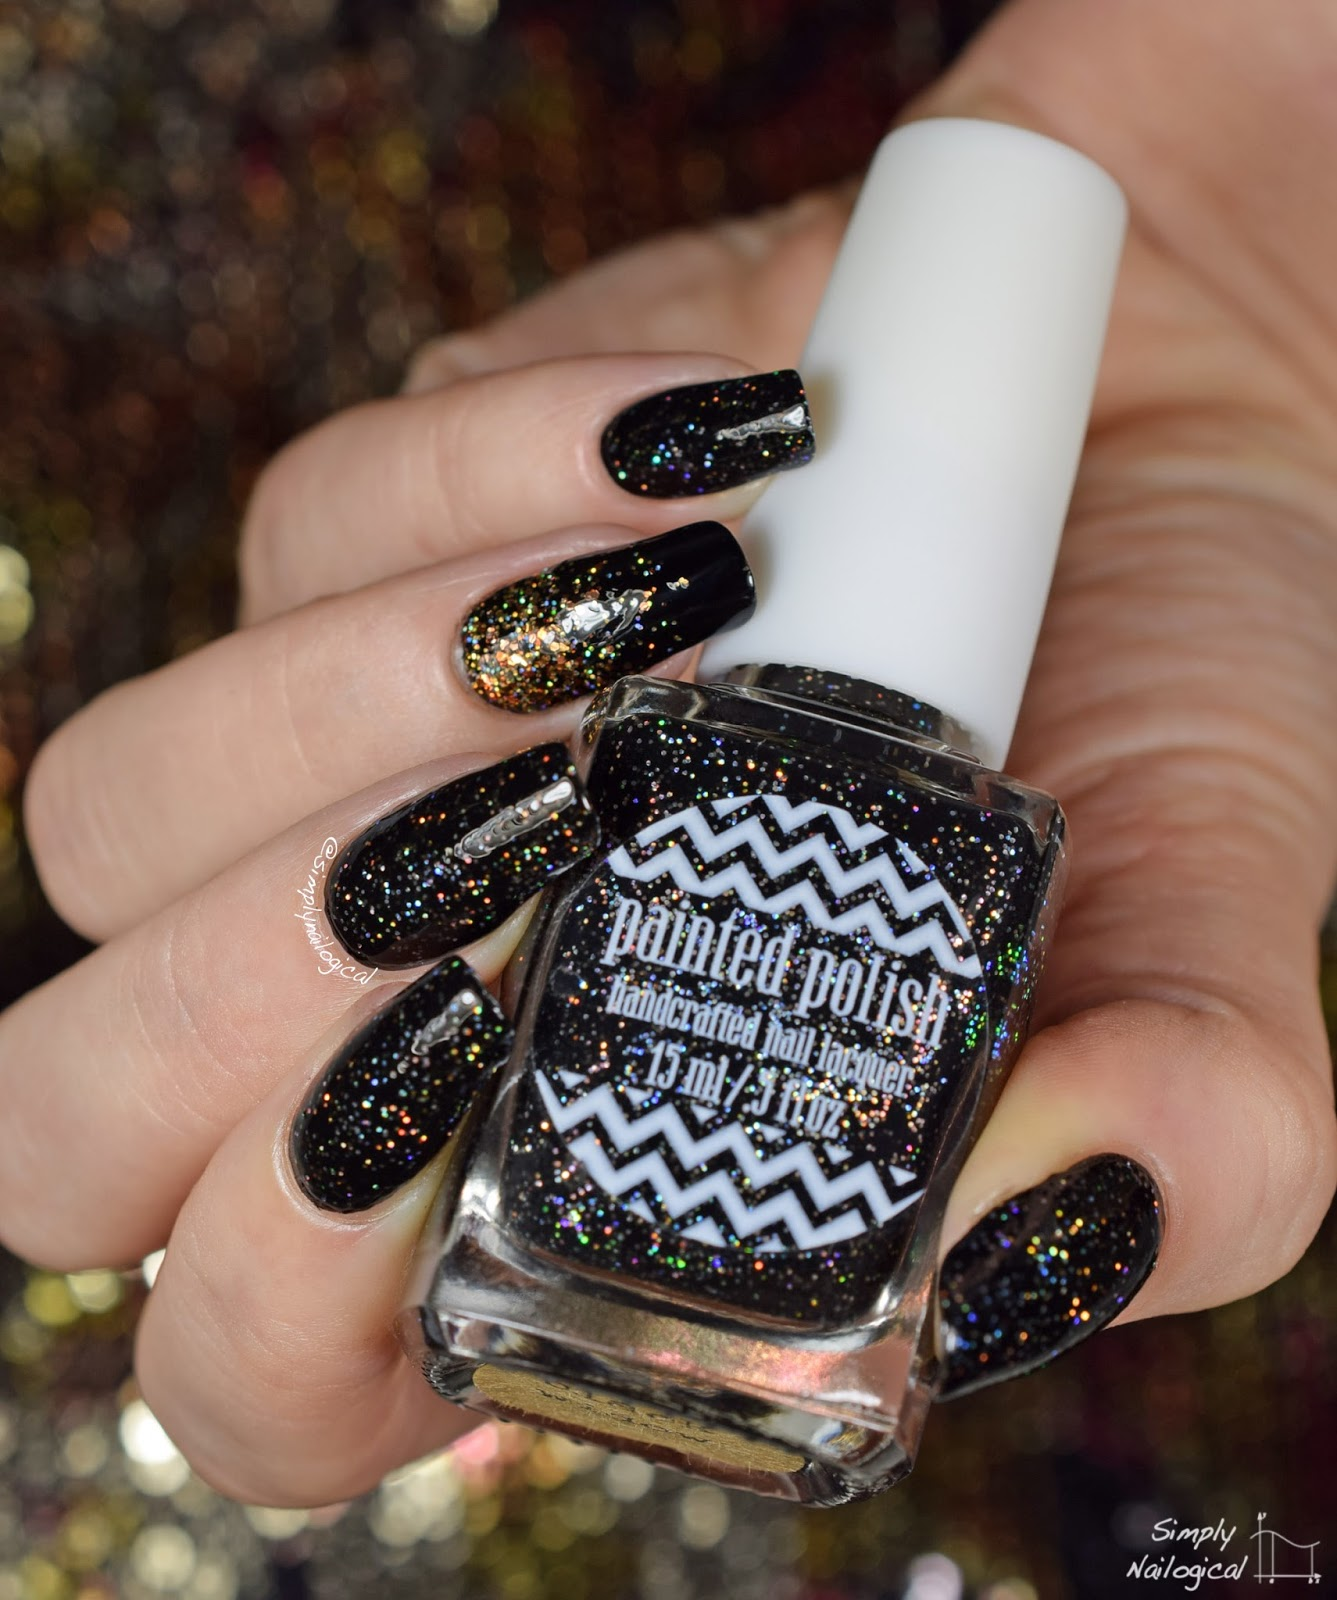 Painted Polish - Black Widow, Baby